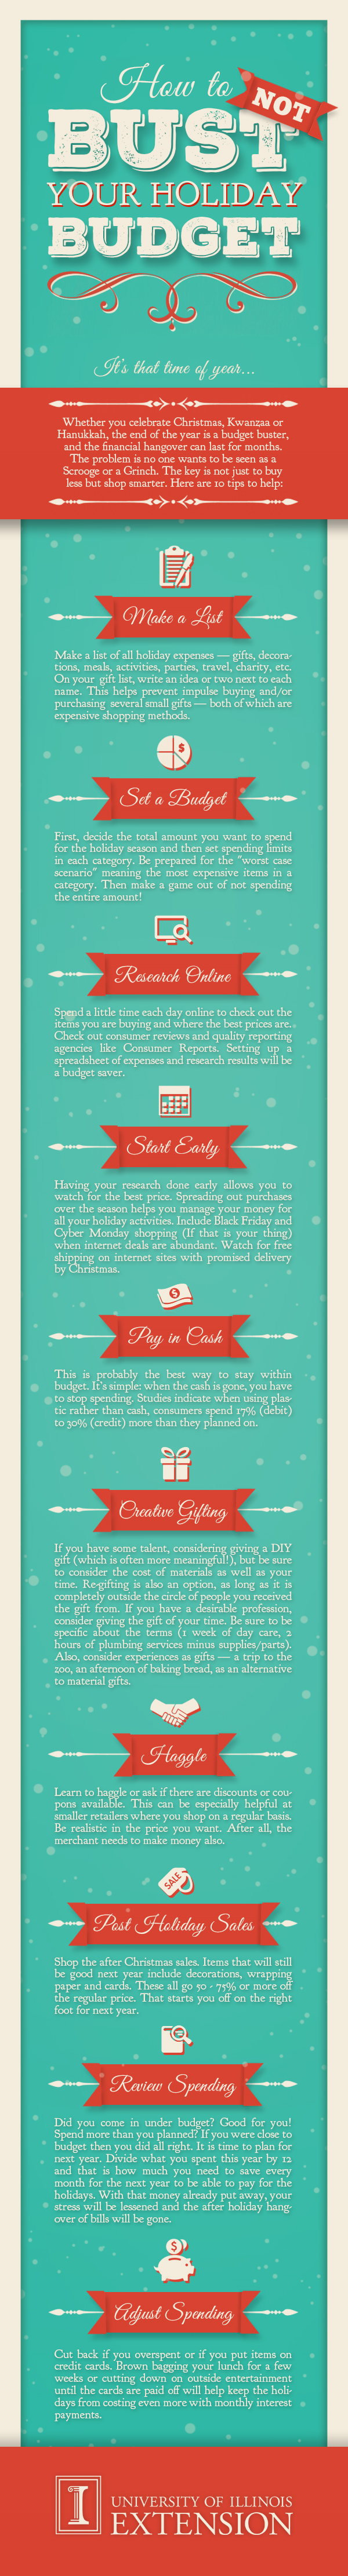 How To Not Bust Your Holiday Budget Infographic Christmas Finances Money Budget Holidays Show Me The Money Budgeting